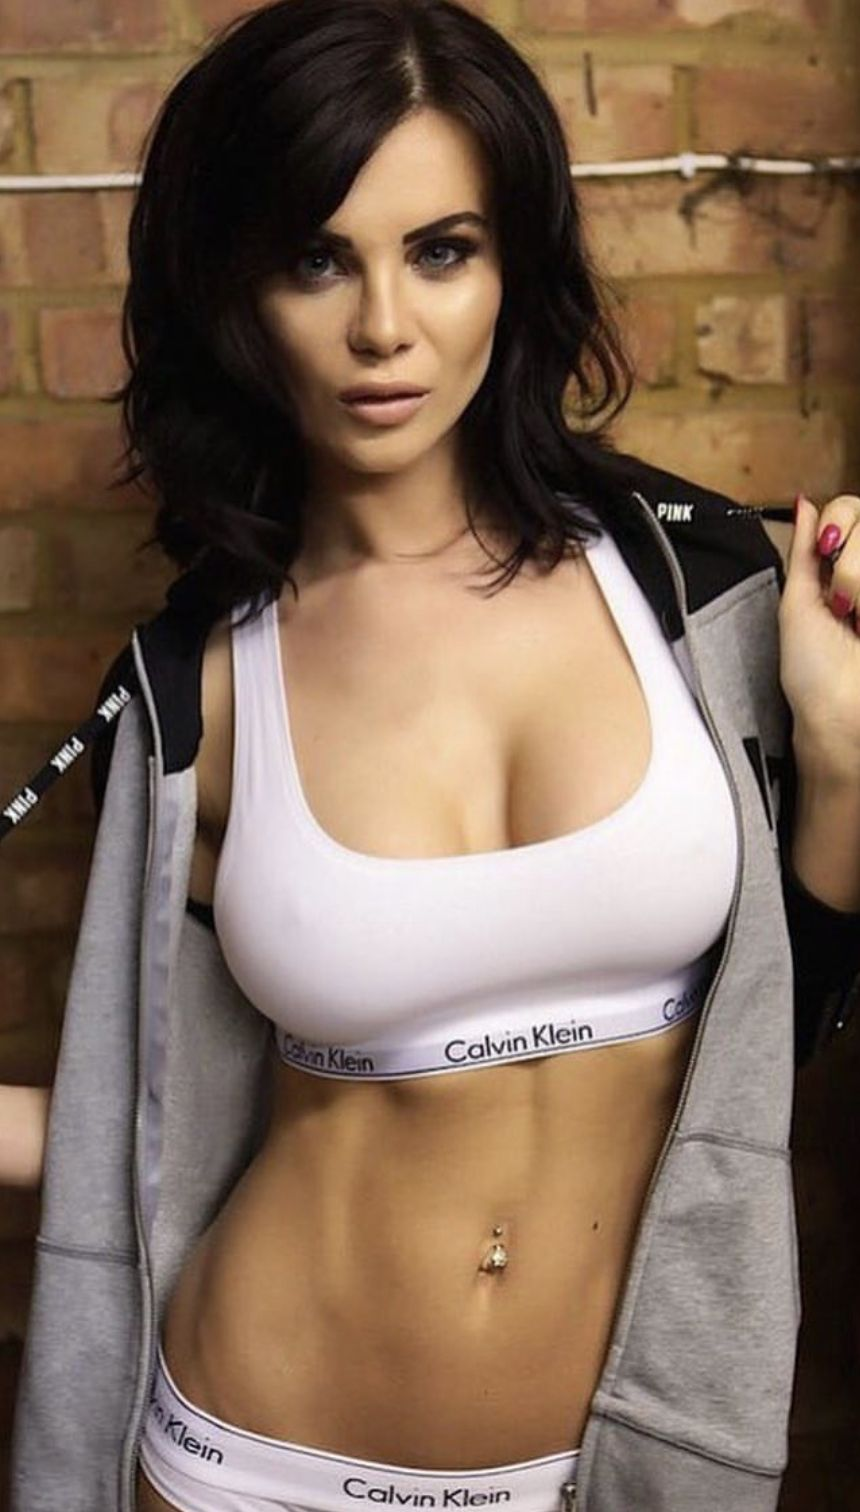 Sexy Video Emma Glover naked photo 2017